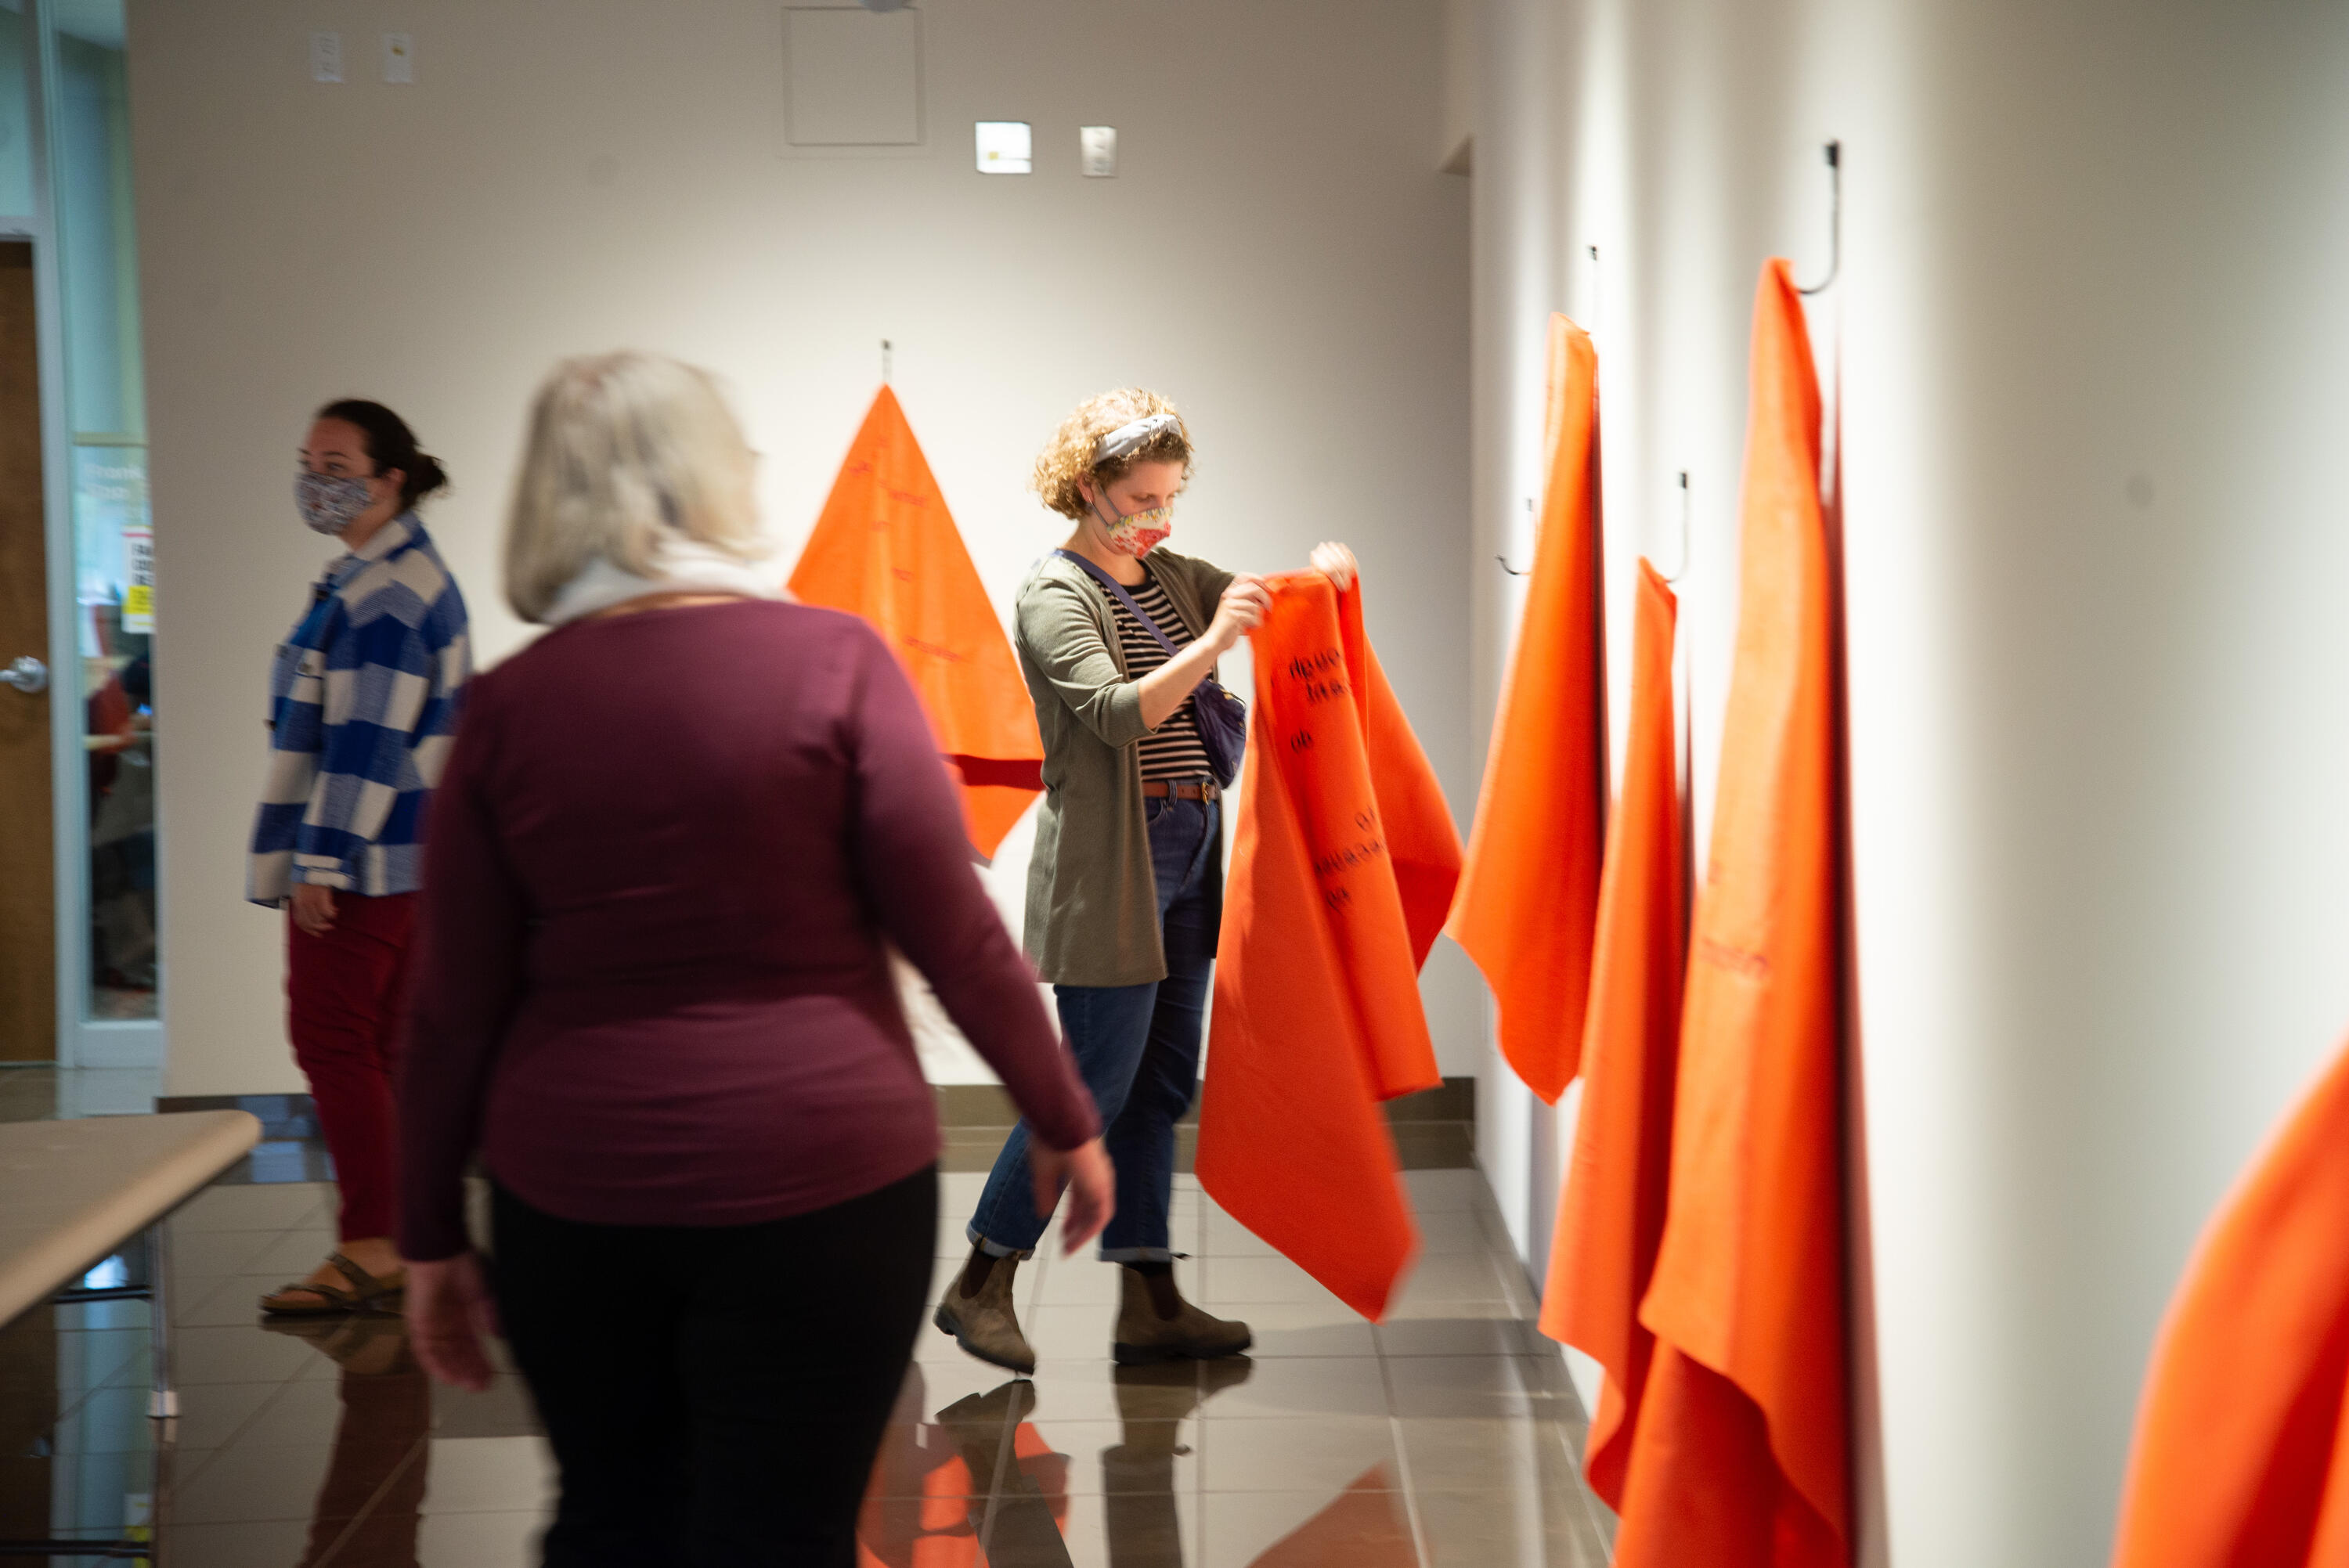 Amy Zavitz of Kindred Credit Union holds up an orange blanket at the Grebel Gallery